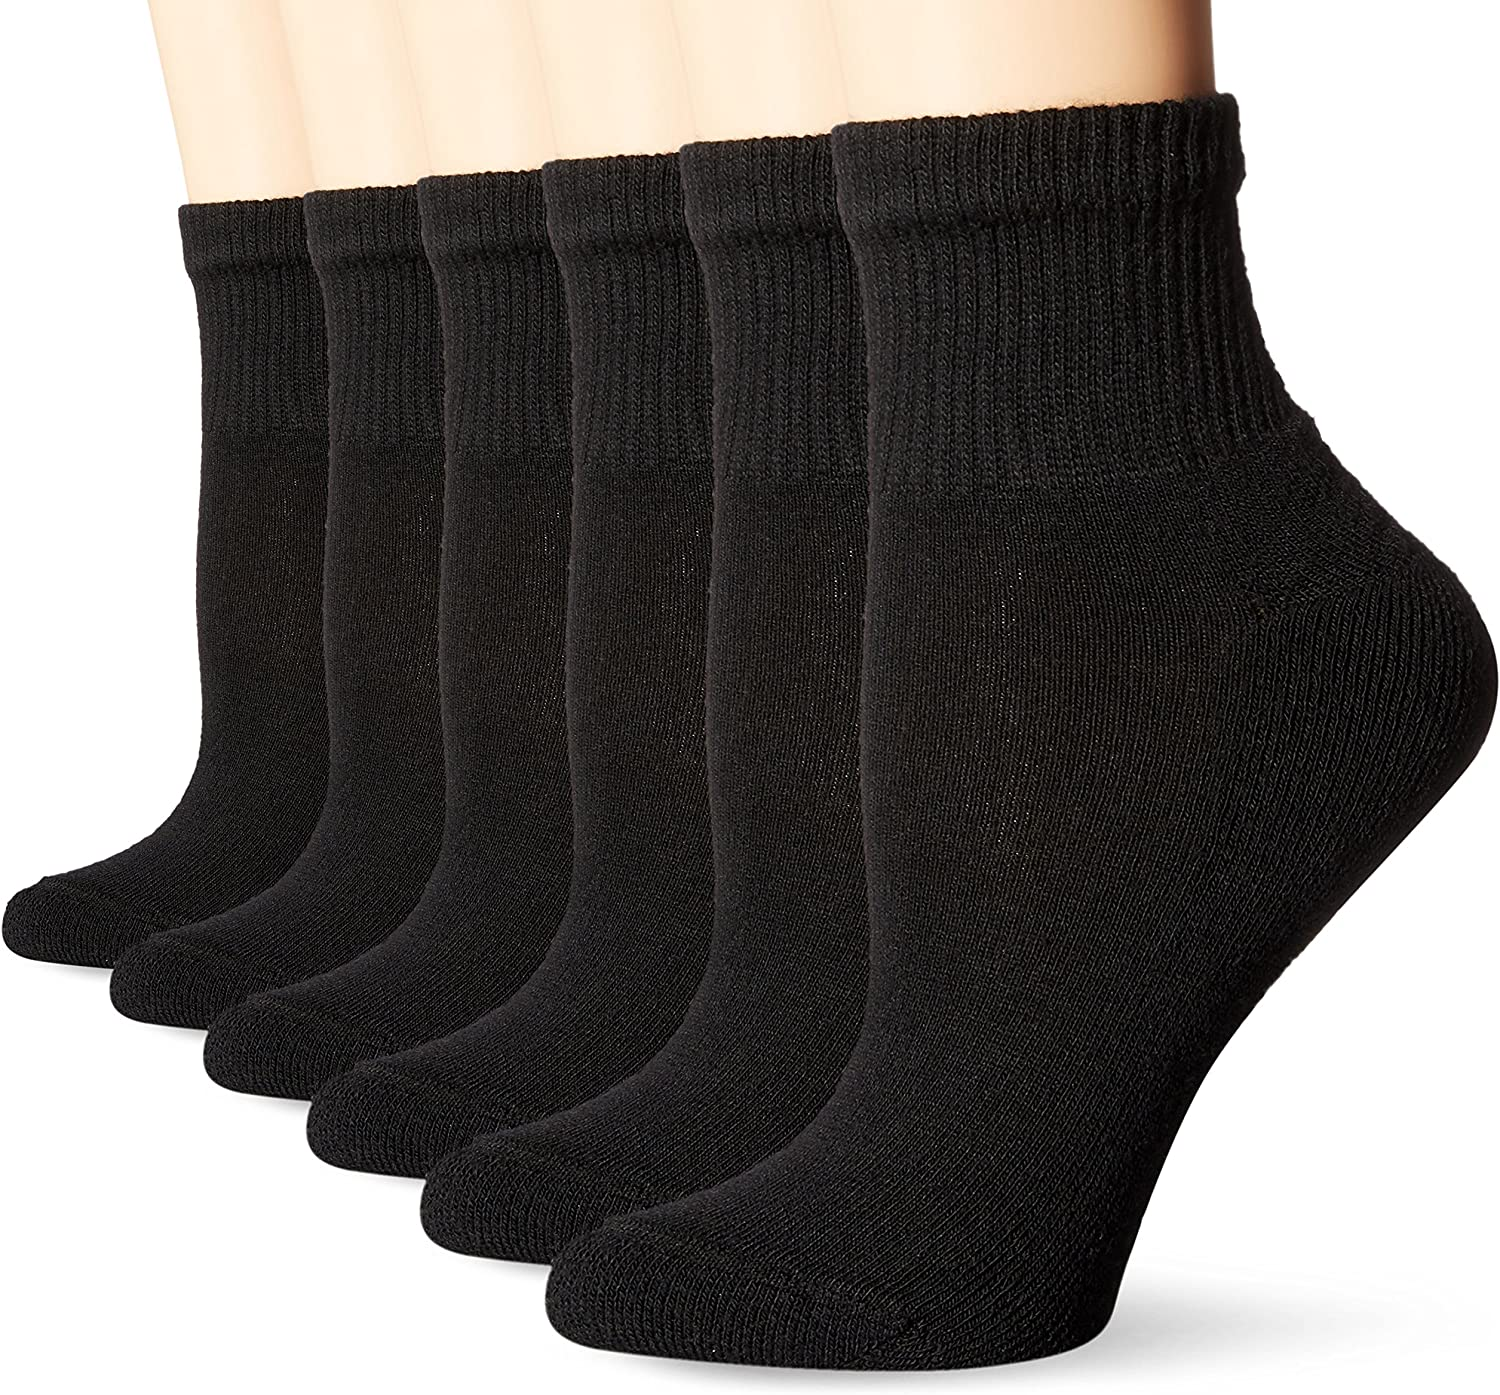 Hanes Crew Socks 6-Pack Women/'s Ultimate ComfortSoft Comfort Toe Black or White